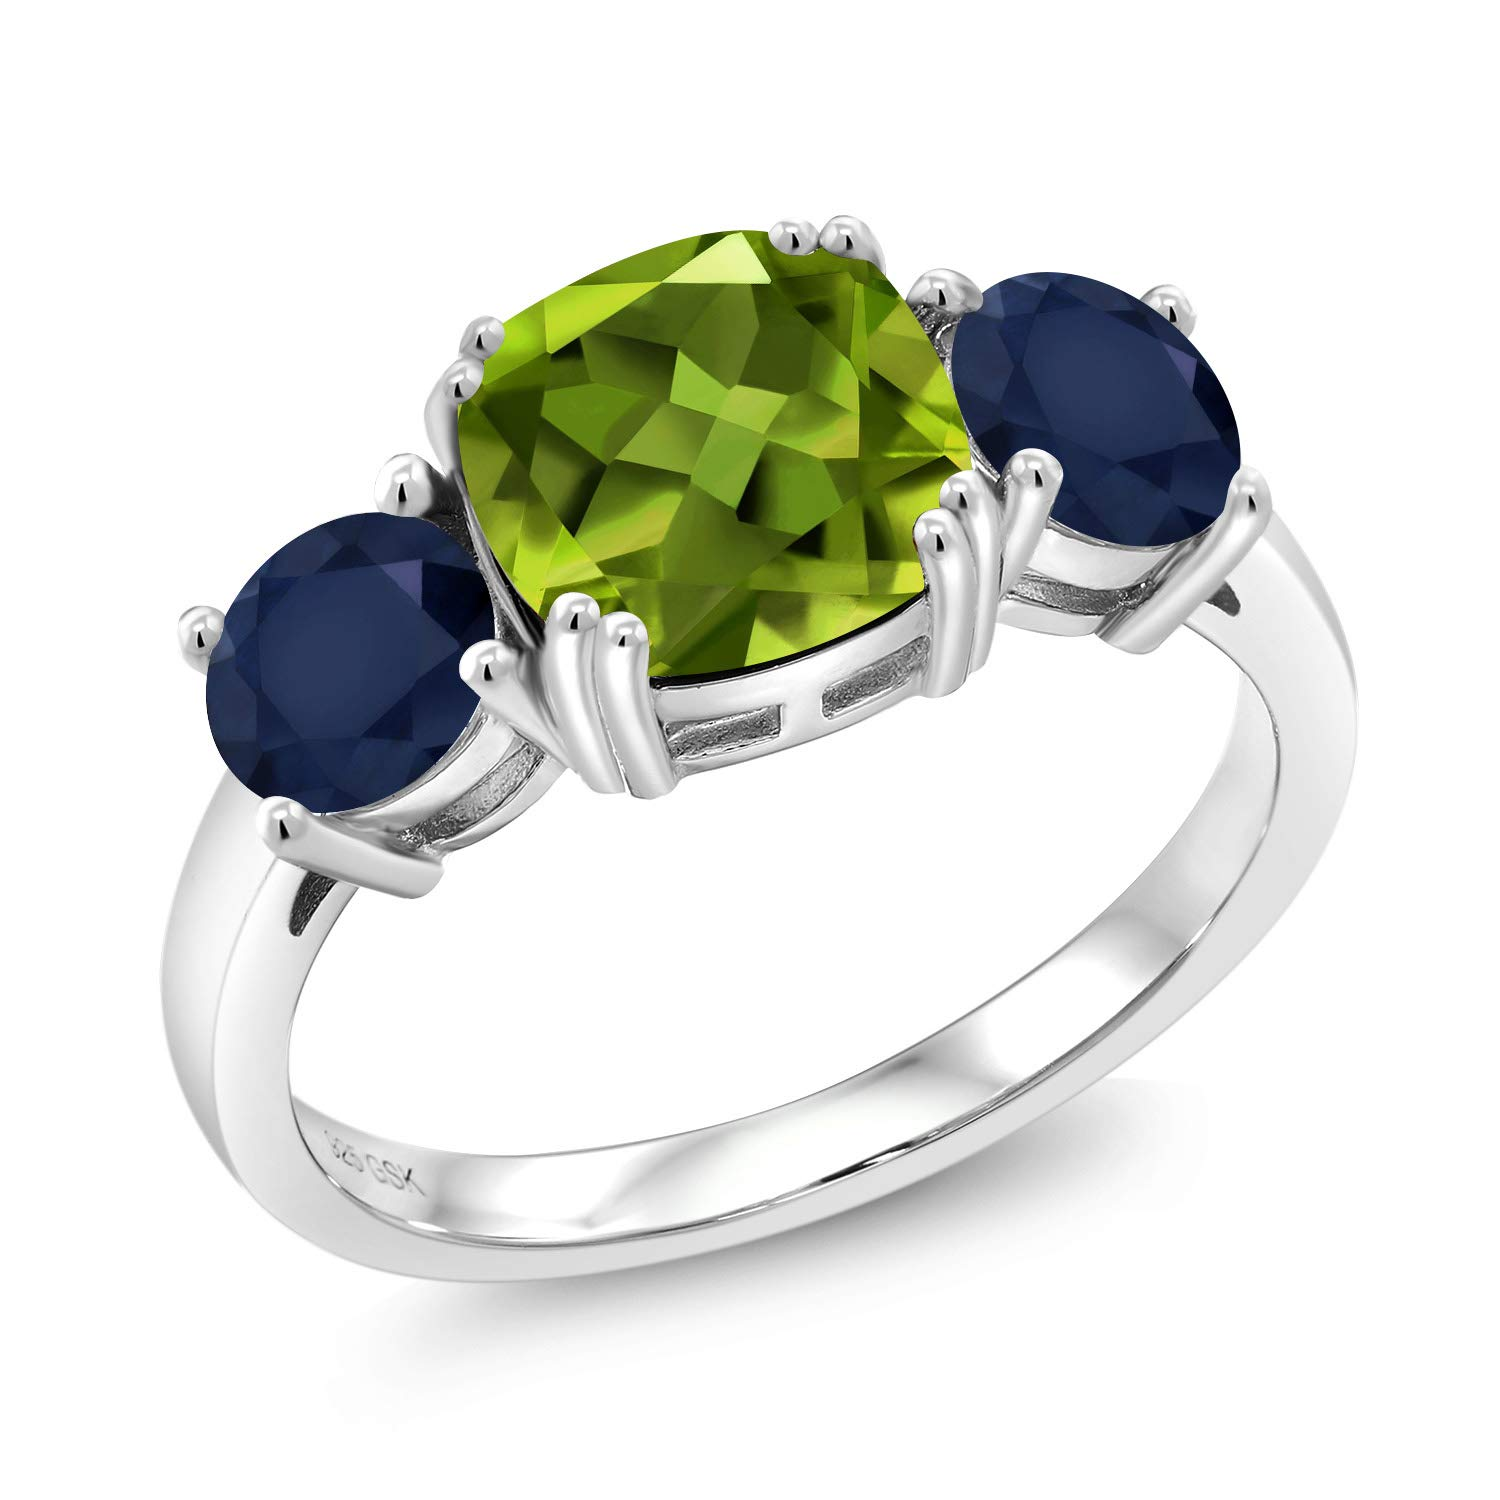 Gem Stone King 3.65 Ct Cushion Green Peridot Blue Sapphire 925 Sterling Silver Ring (Size 8) by Gem Stone King